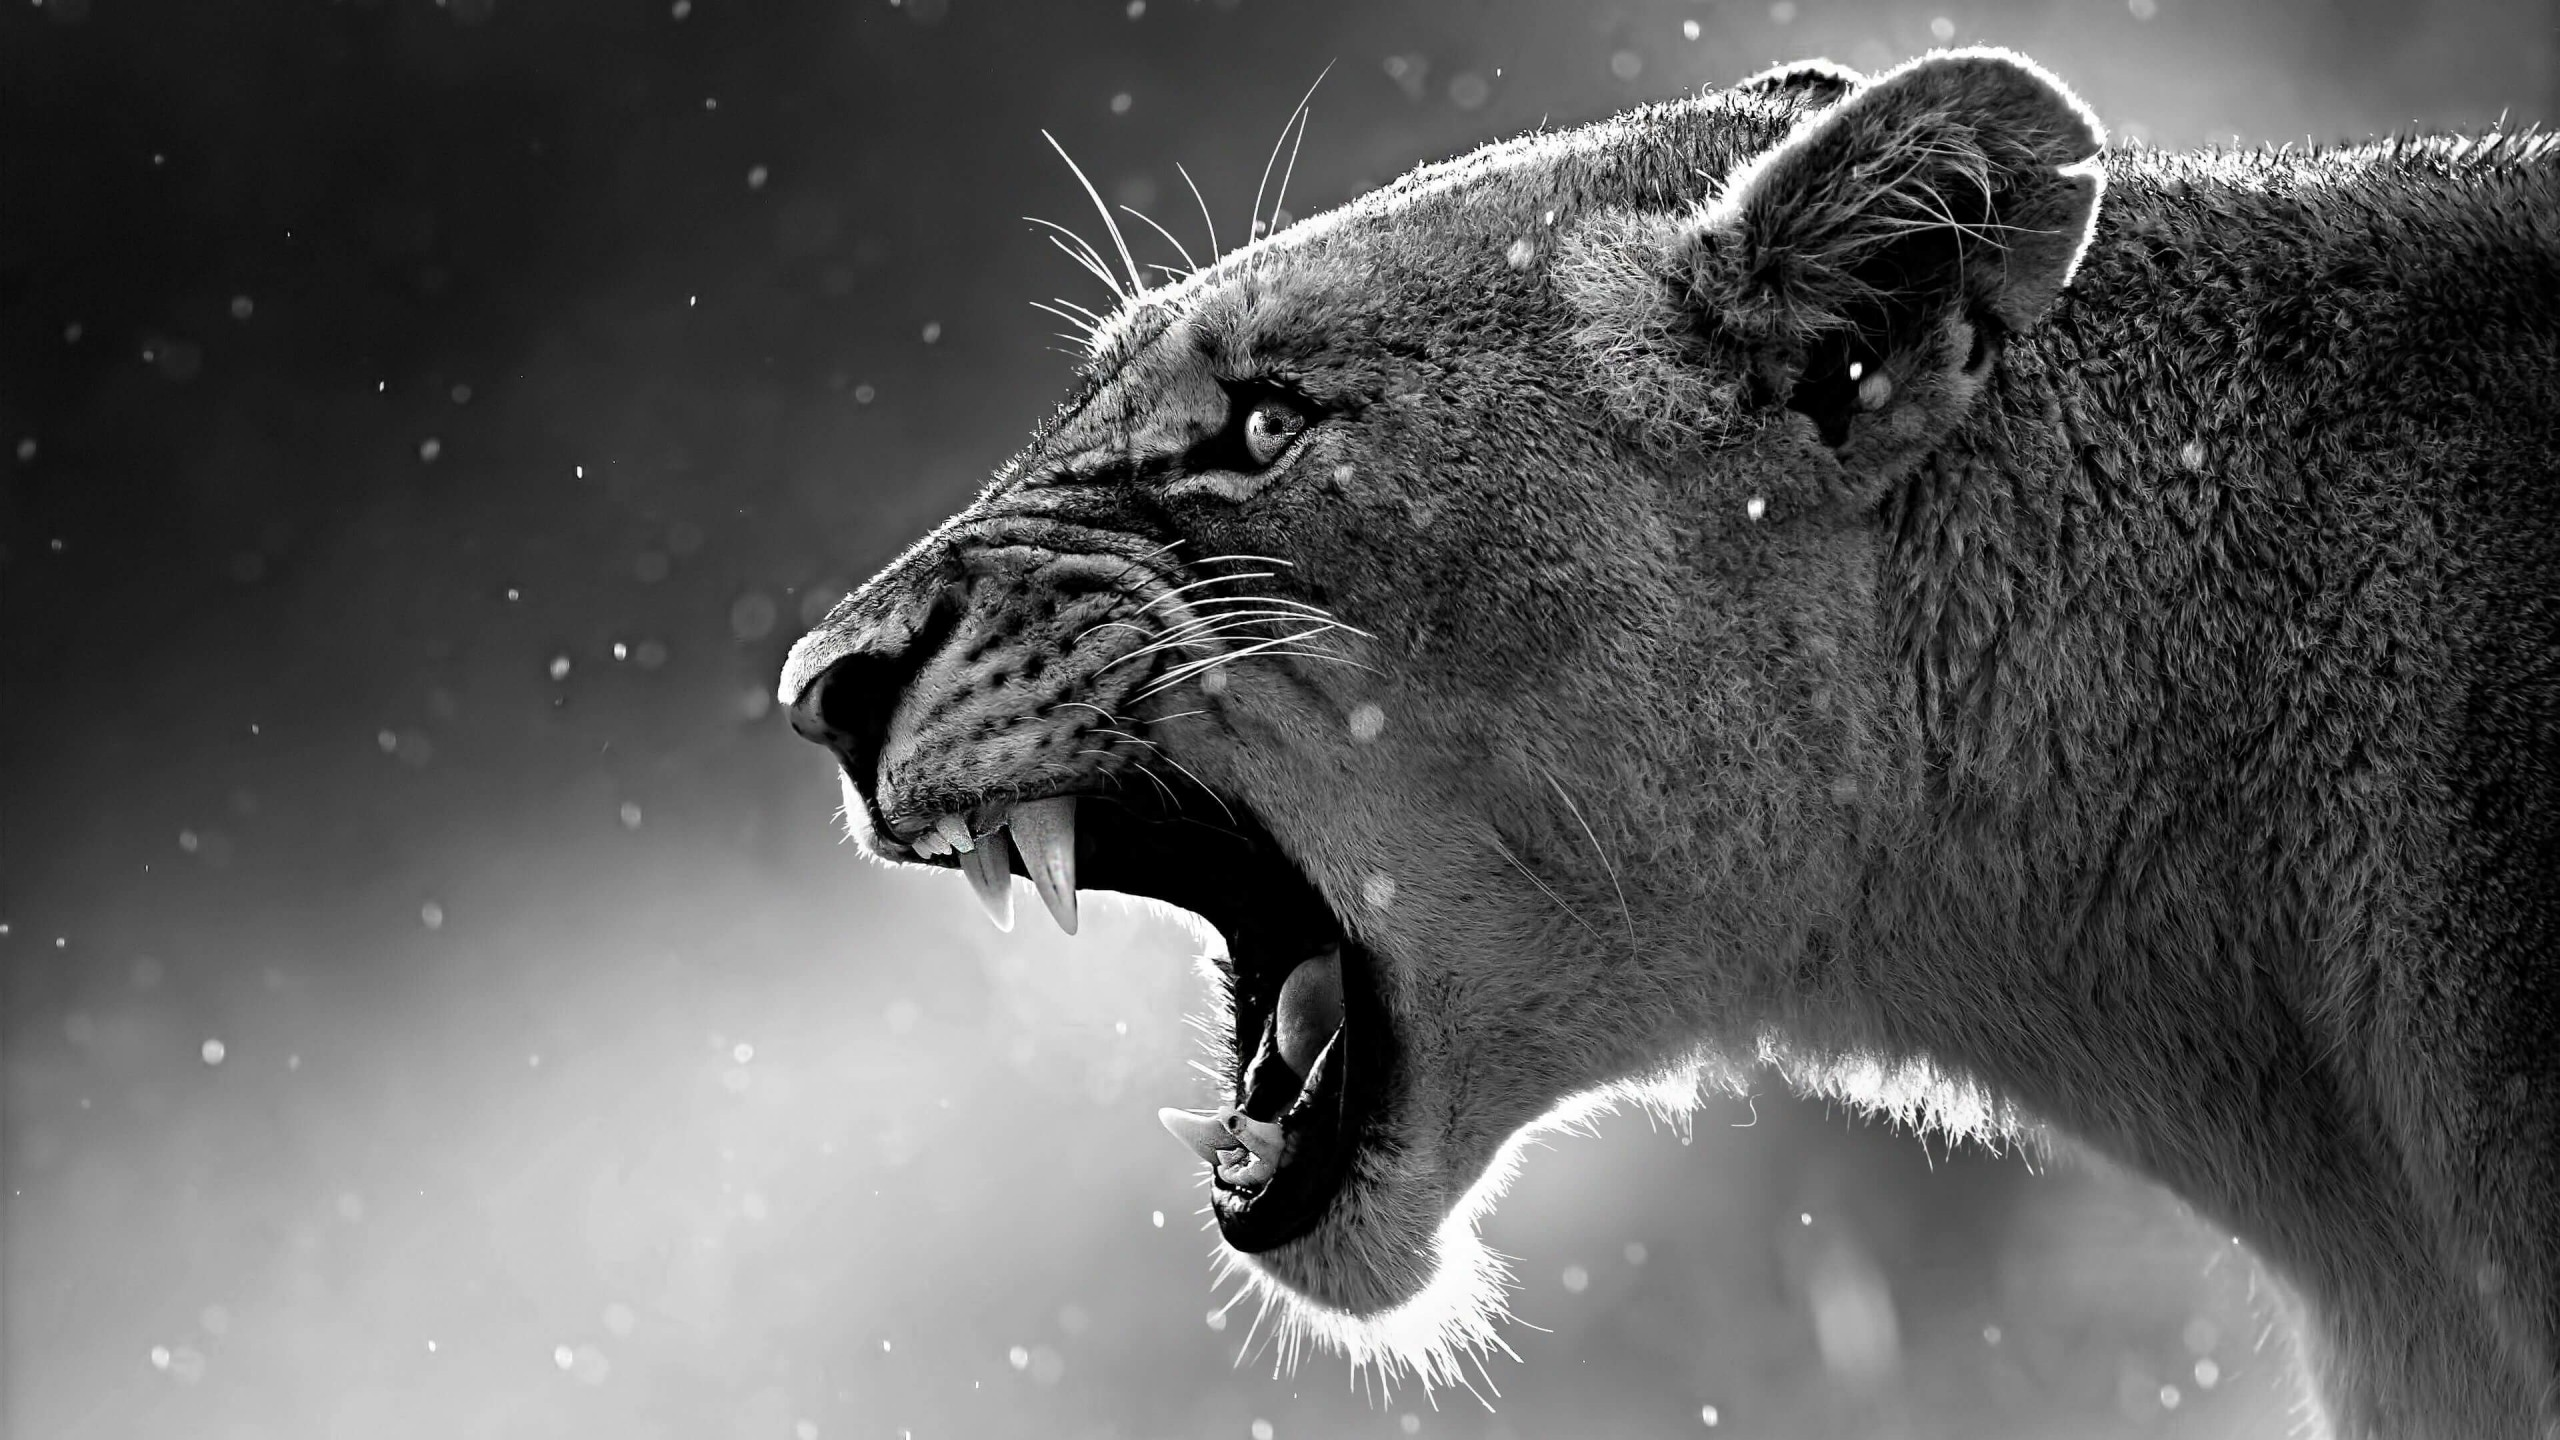 Lioness in Black & White Wallpaper for Desktop 2560x1440